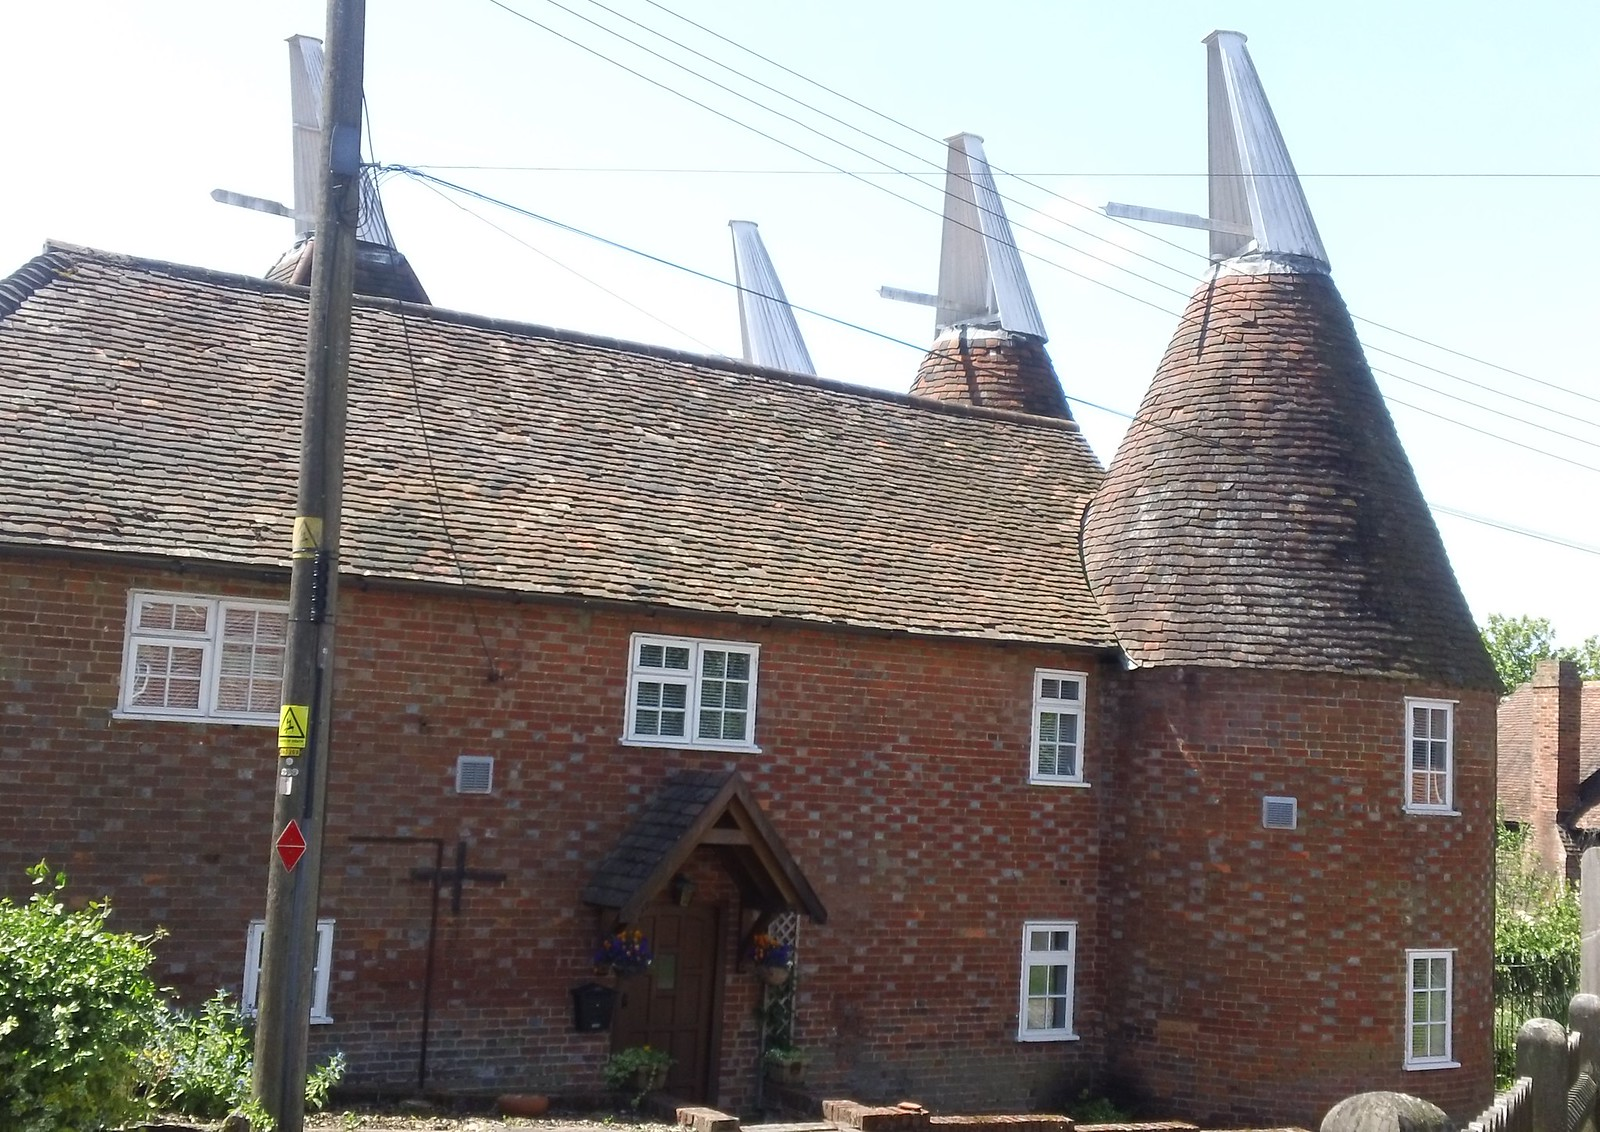 4 points skywards former Kentish oast house, now a dwelling